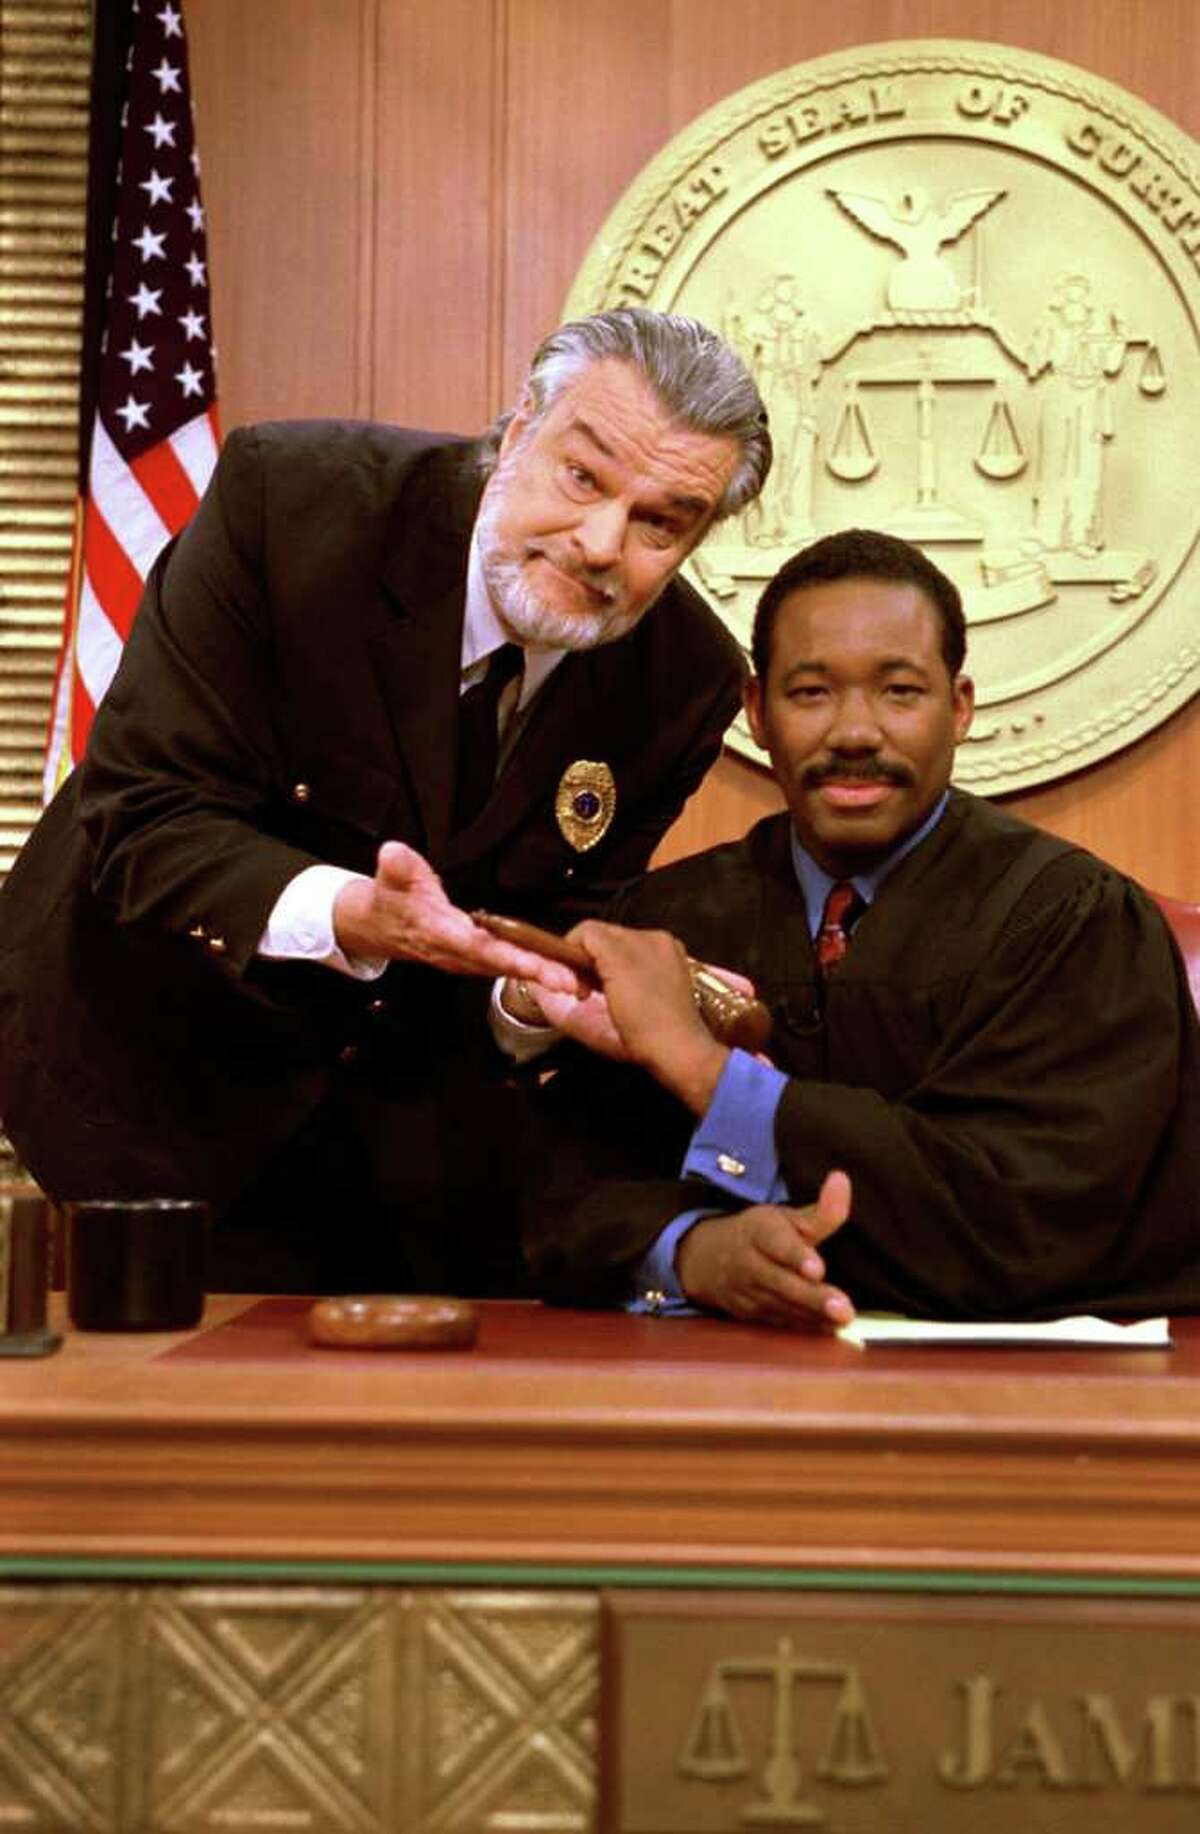 James Curtis (right) of CURTIS COURT gets a helping hand from guest bailiff, NIGHT COURT'S Richard Moll (left). This episode airs Tuesday, February 6, 2001 in nationwide syndication. photo: Eric Liebowitz / King World